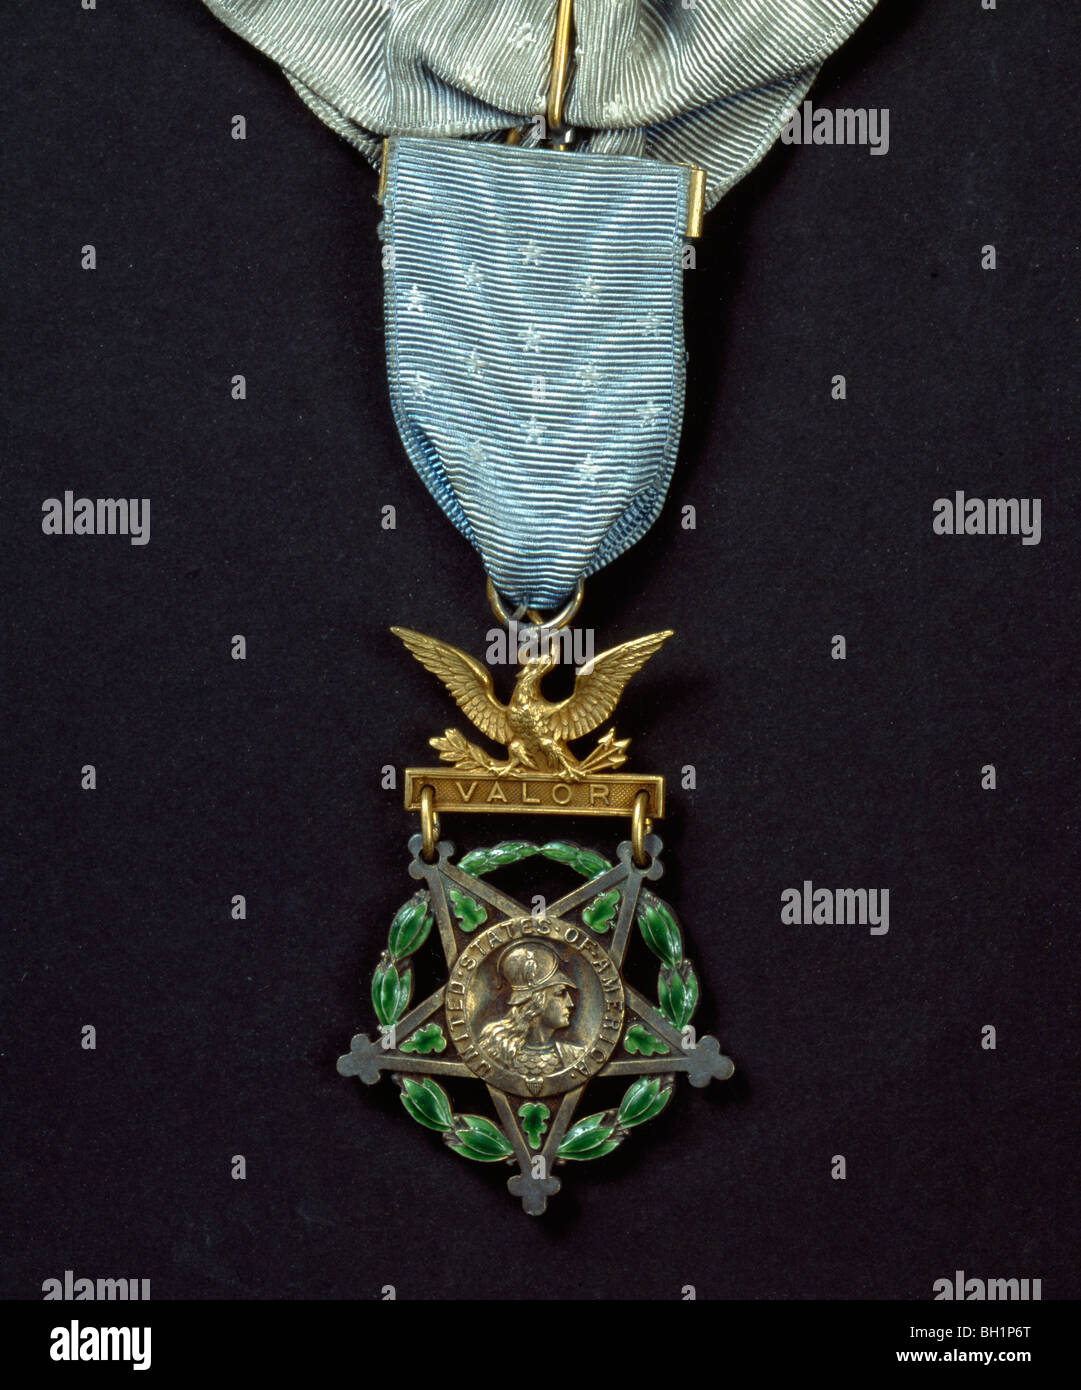 Westminster Abbey : Congressional Medal of Honor inscribed 'VALOR' awarded by US government to the Unknown - Stock Image